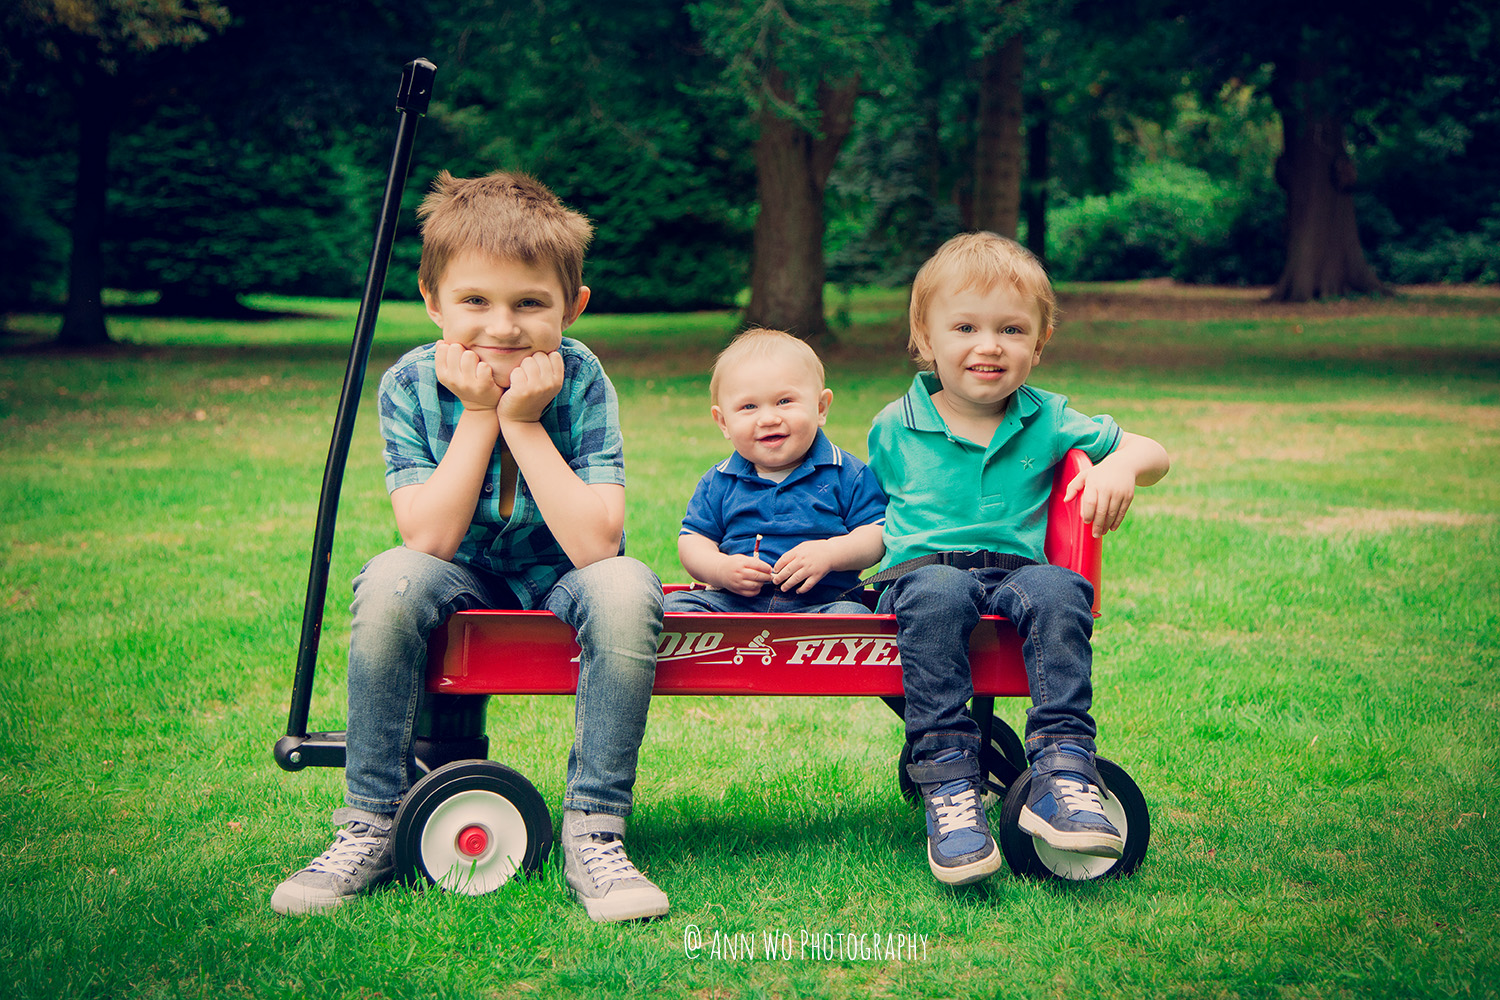 outdoor-family-photography-ann-wo-london-3boys.jpg